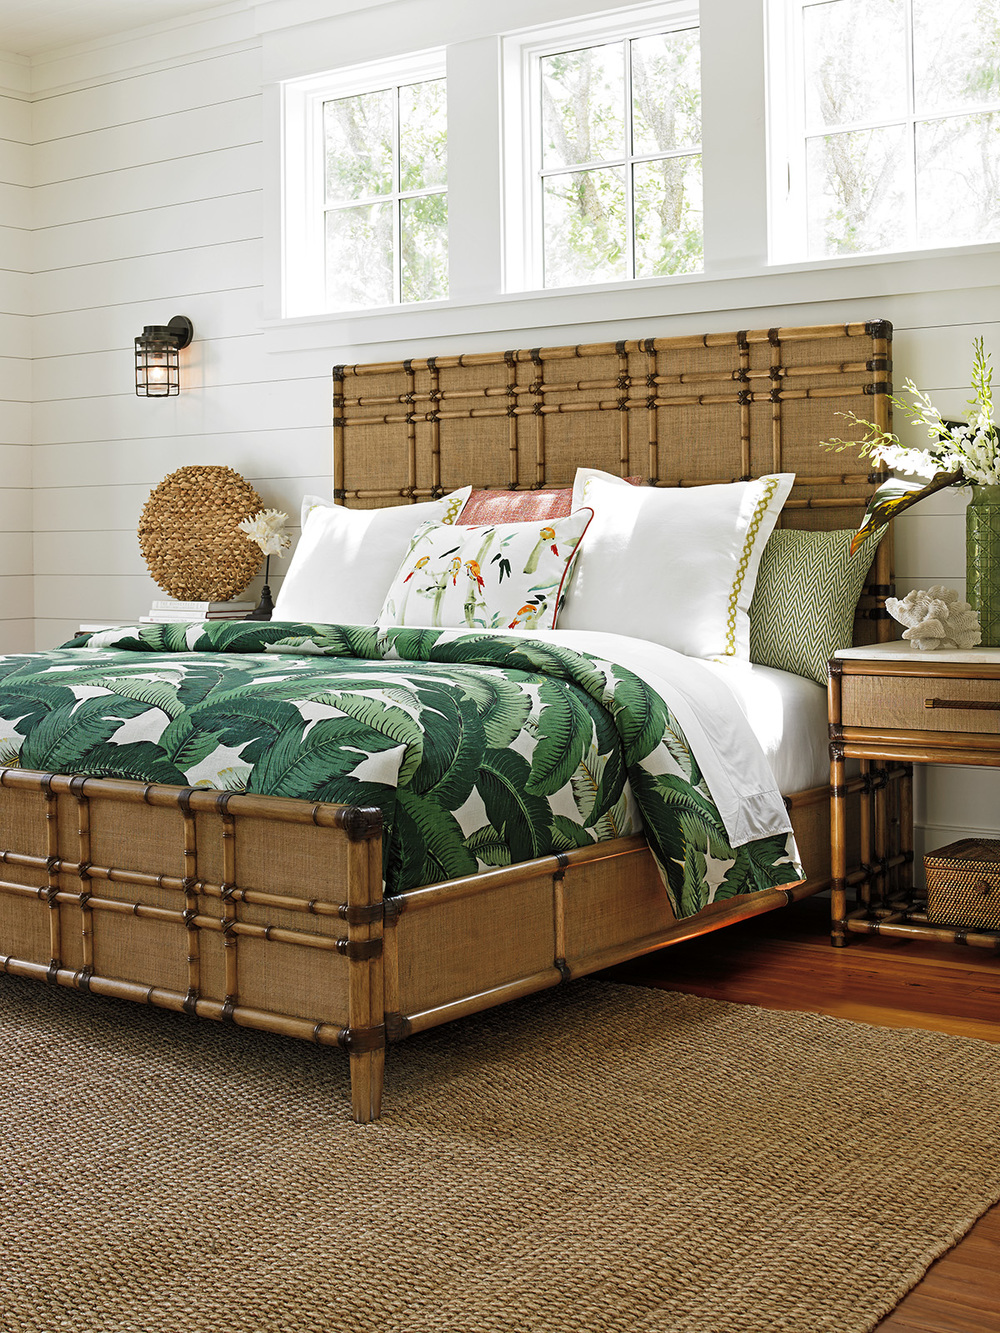 Lexington - Coco Bay Panel Bed